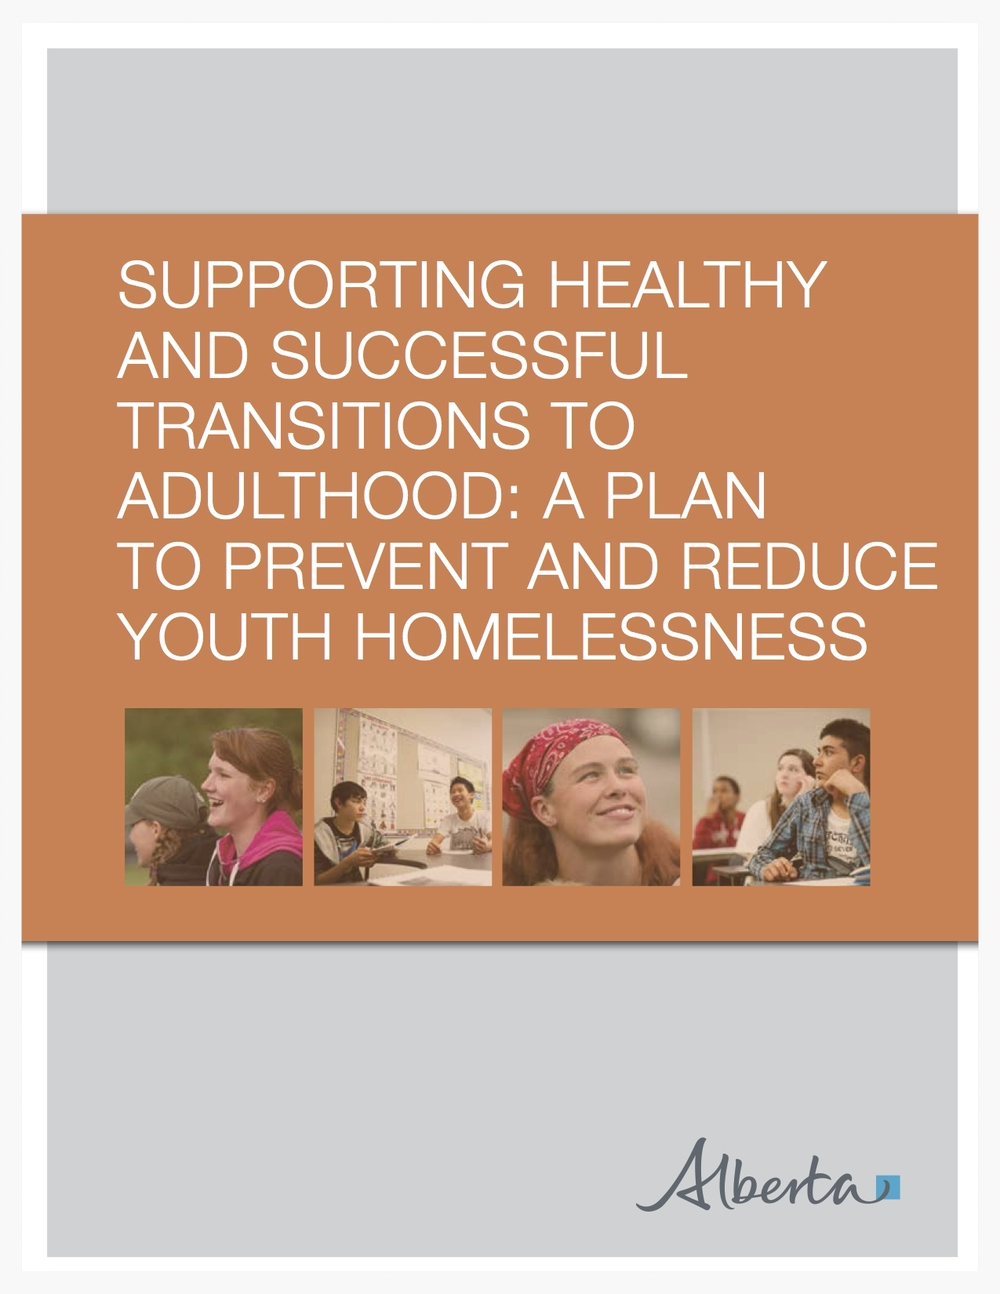 plan-to-prevent-and-reduce-youth-homelessness - copie.jpg